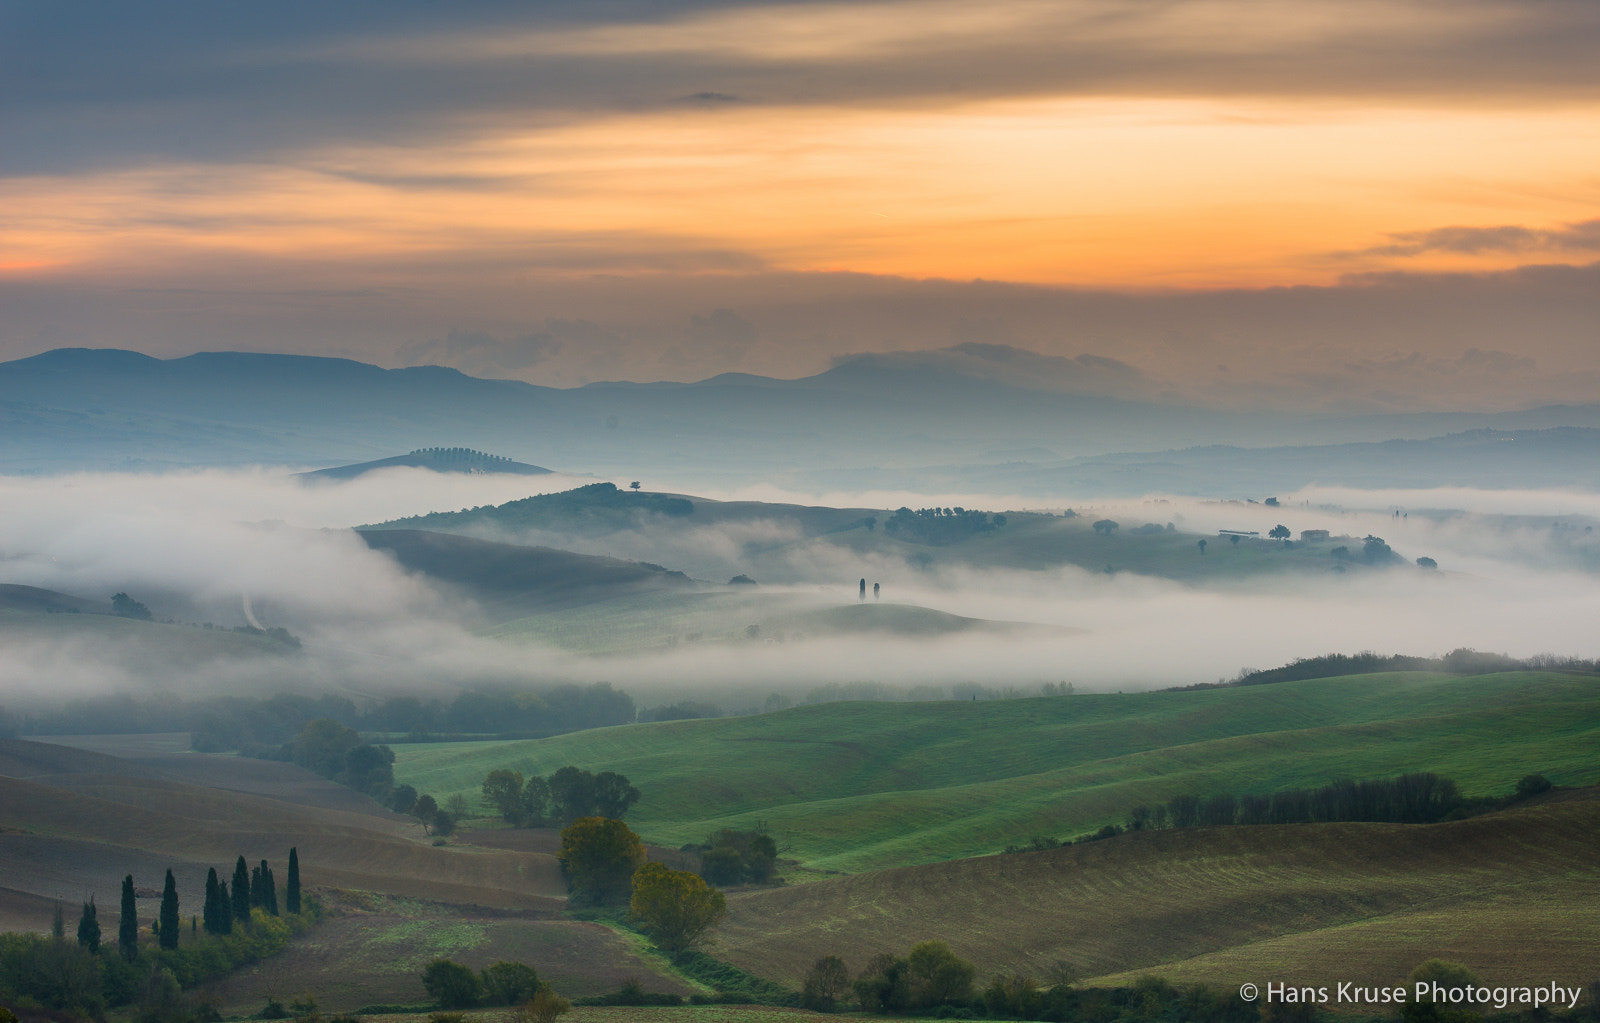 Photograph Early morning mood in Tuscany by Hans Kruse on 500px